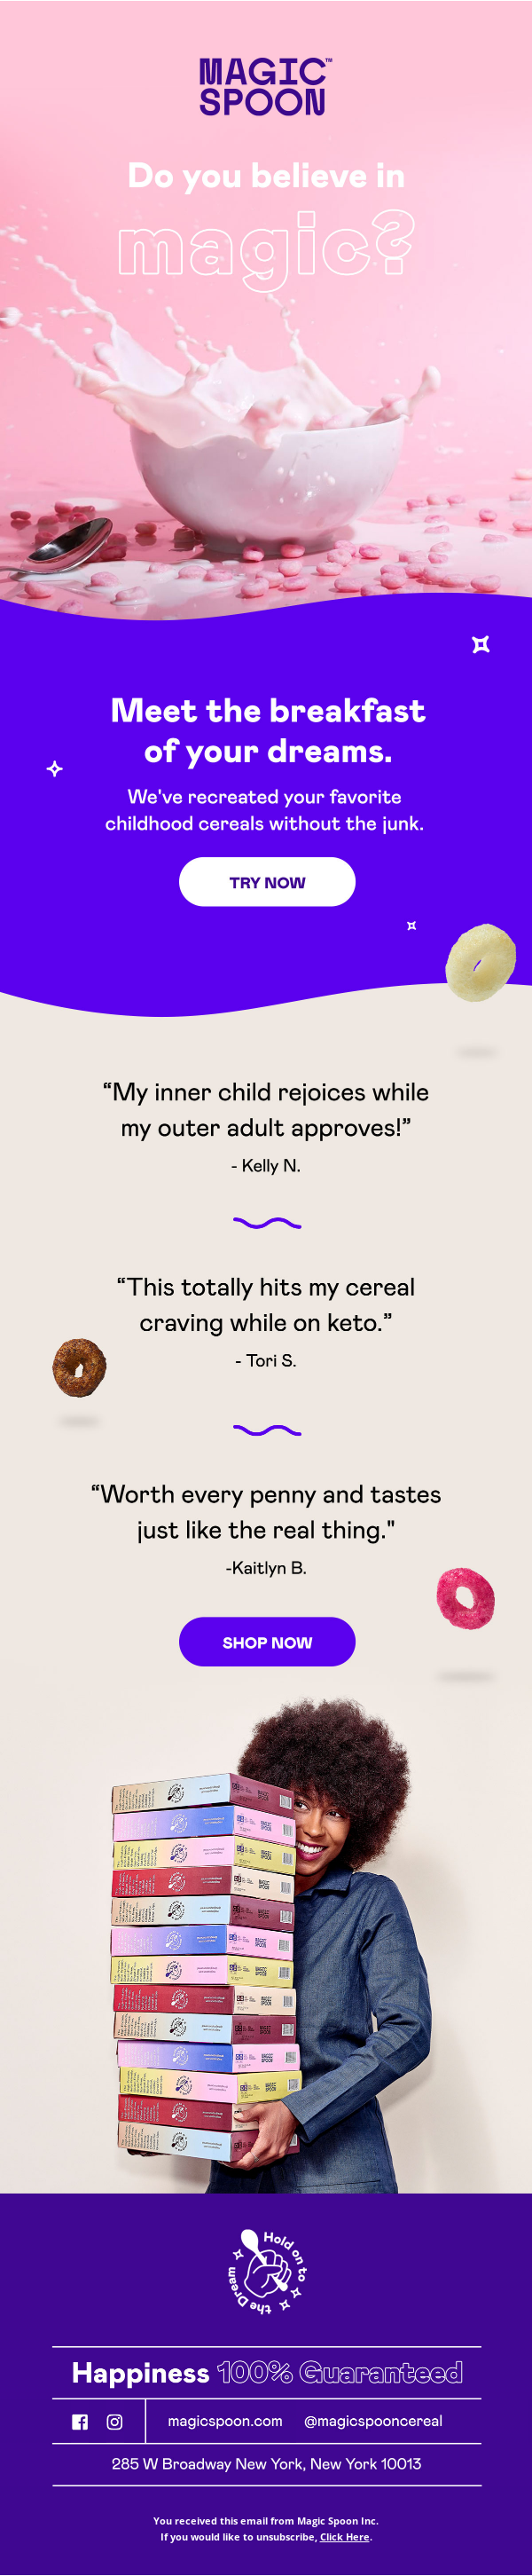 Example of a colorful and vivid welcome email from an ecommerce brand Magic Spoon. Featuring a bowl of cereals, strong call to action buttons, and quotes from satisfied customers.